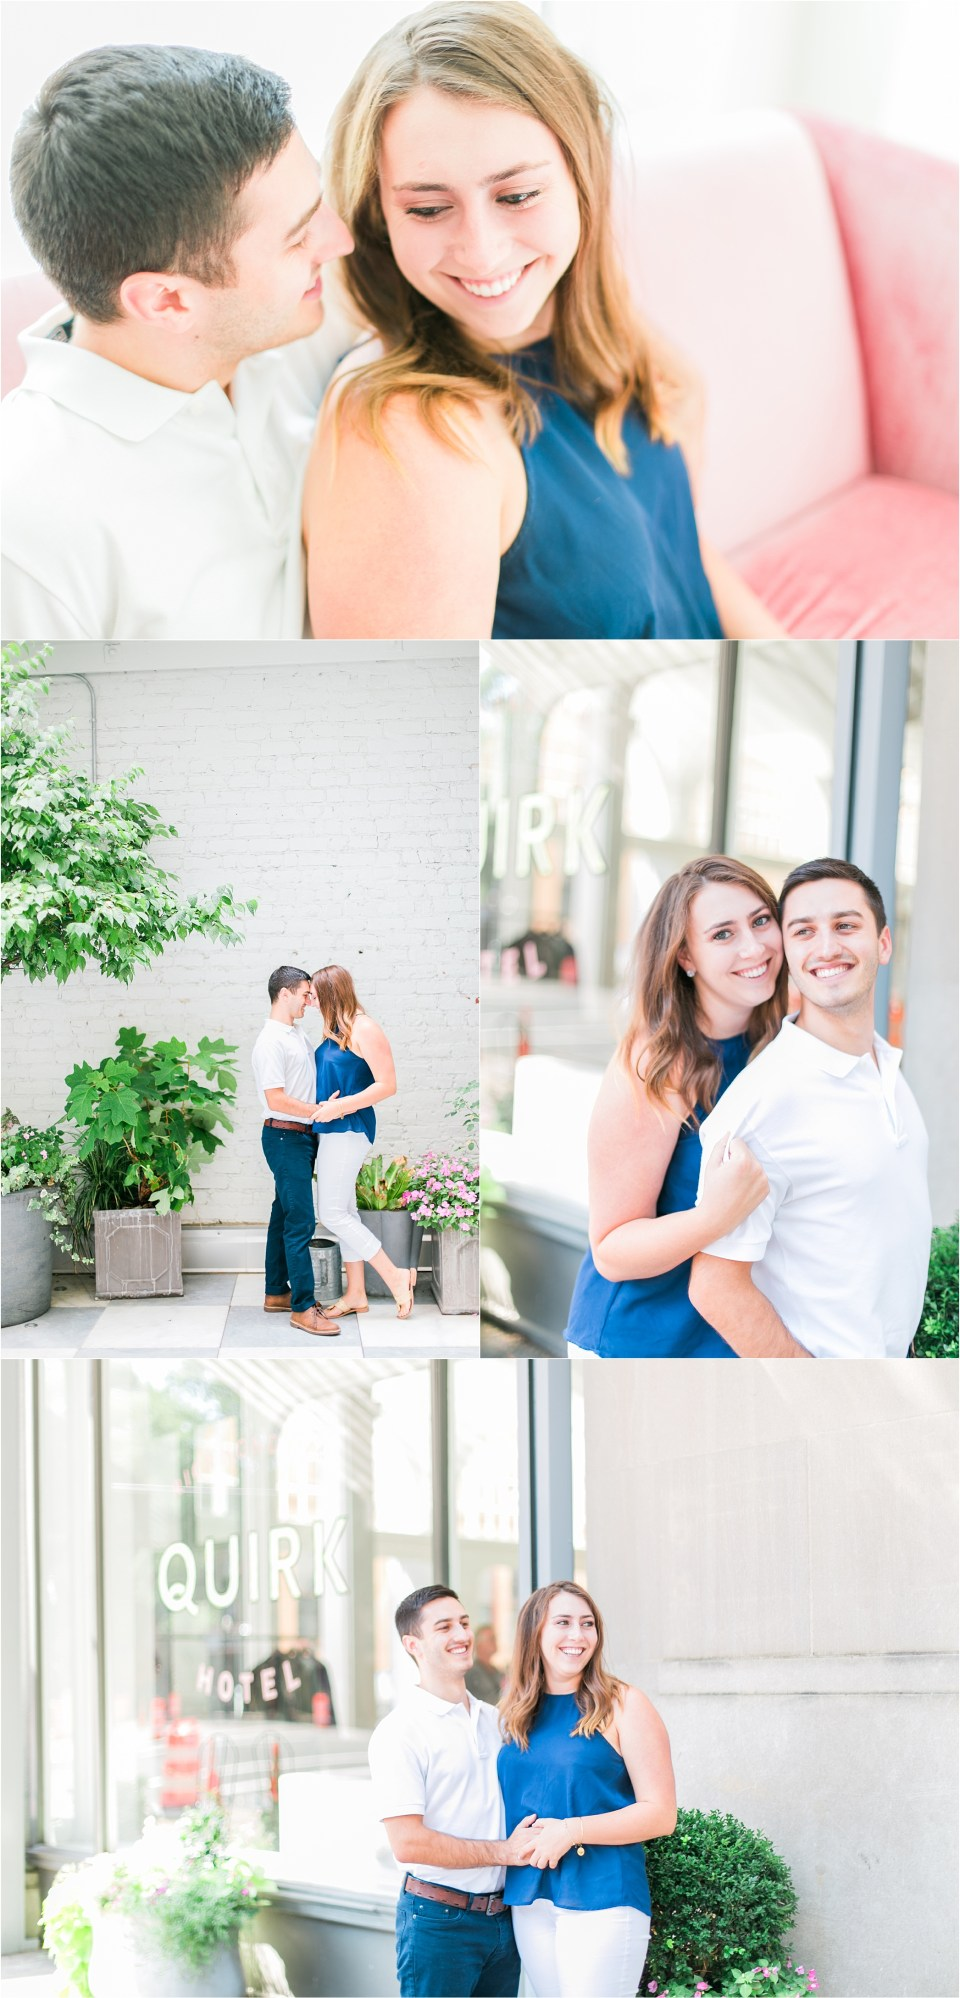 Costola Photography, Richmond Wedding Photographer, Quirk Hotel